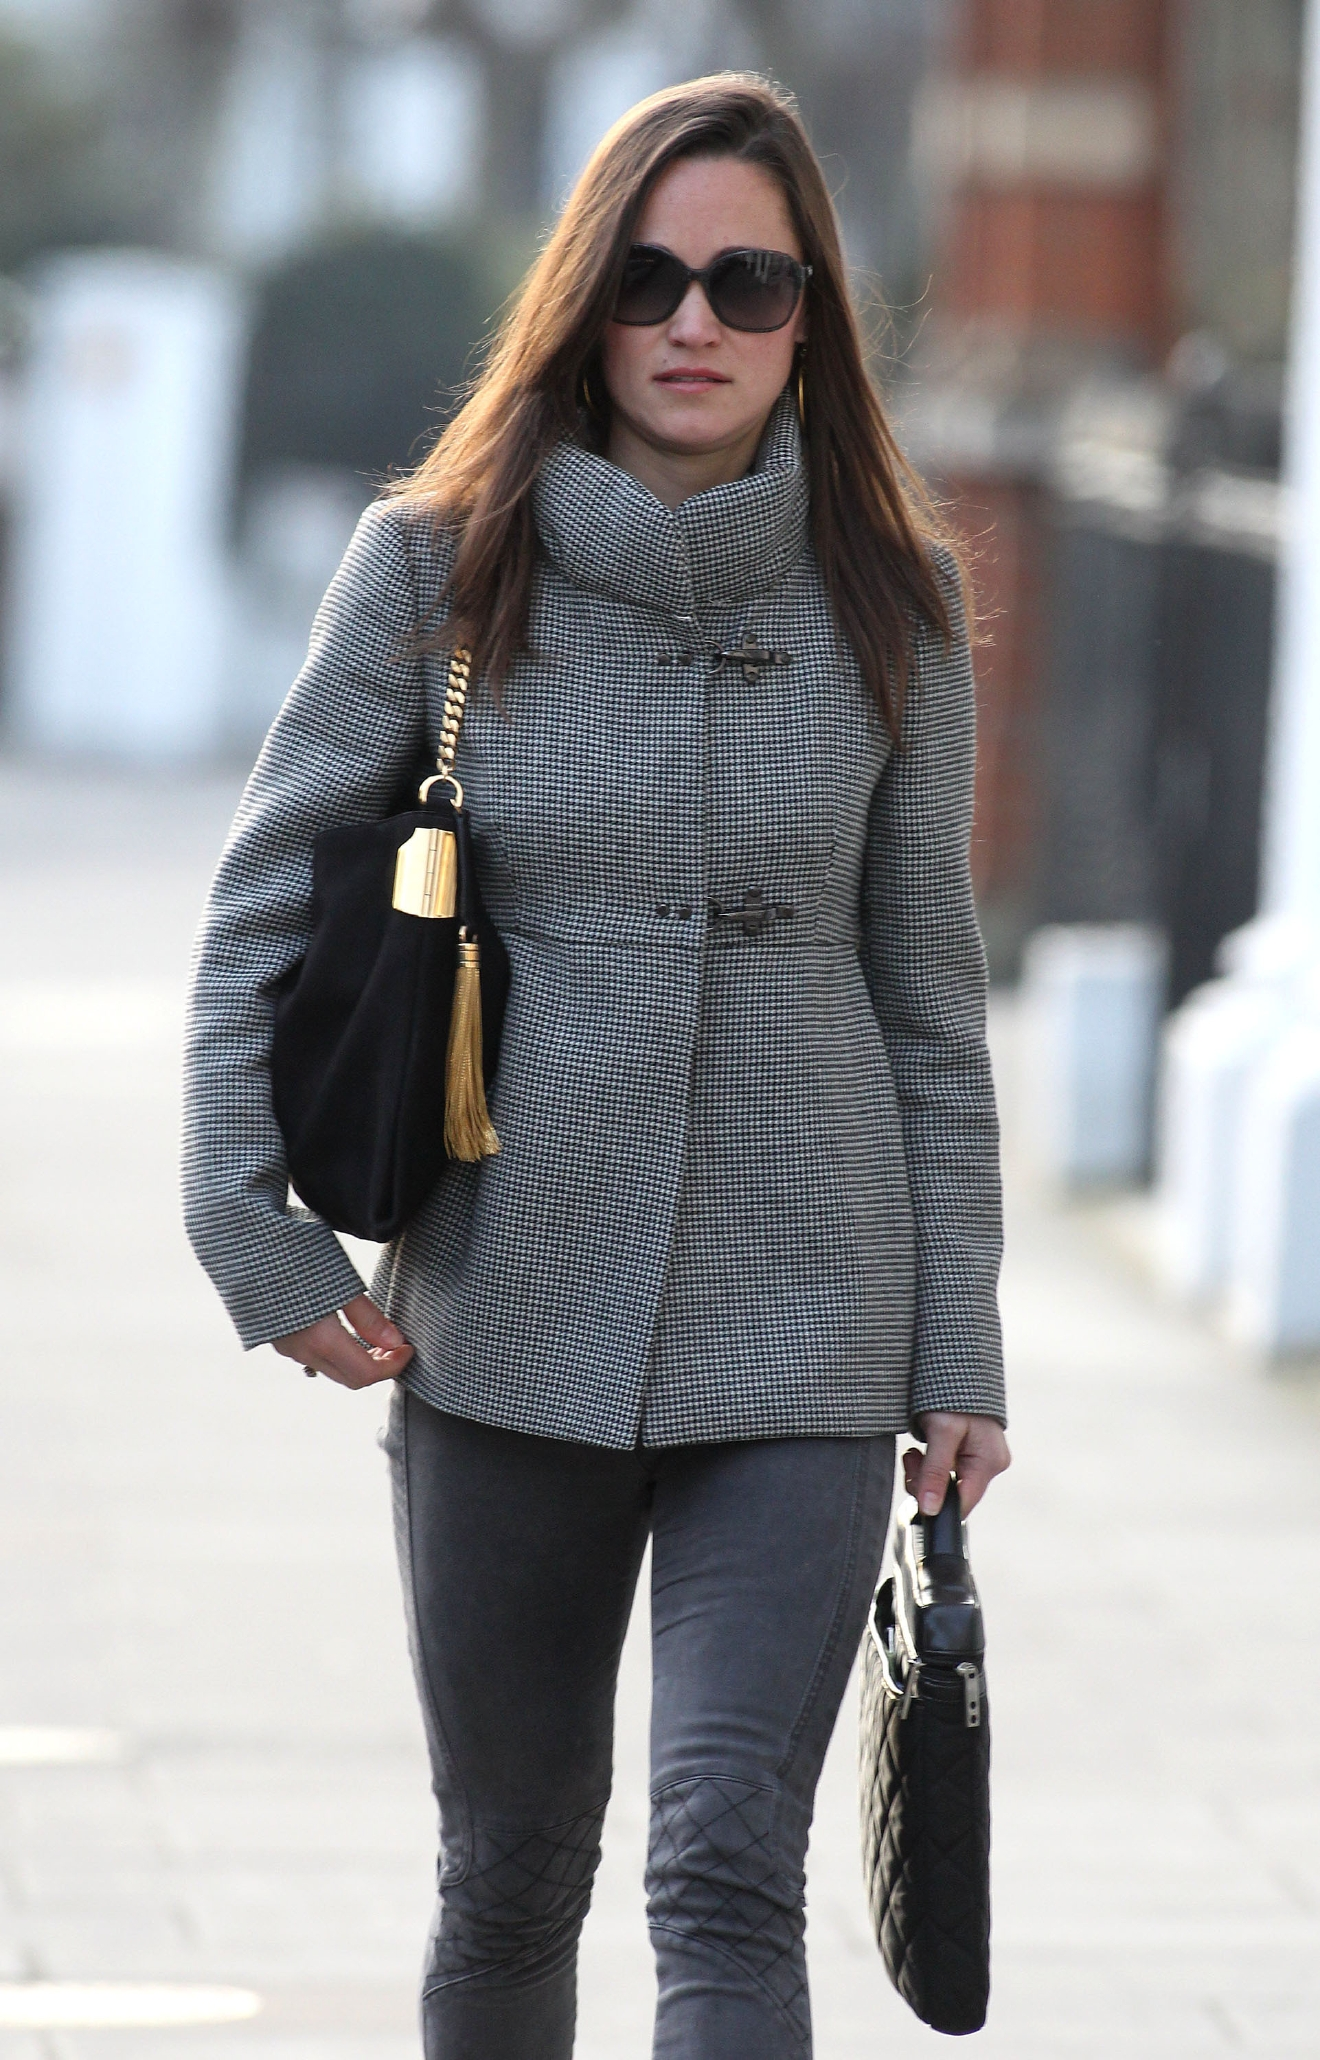 Pippa Middleton walking to work in West London London, England - 17.01.12  Featuring: Pippa Middleton Where: London, United Kingdom When: 17 Jan 2012 Credit: WENN